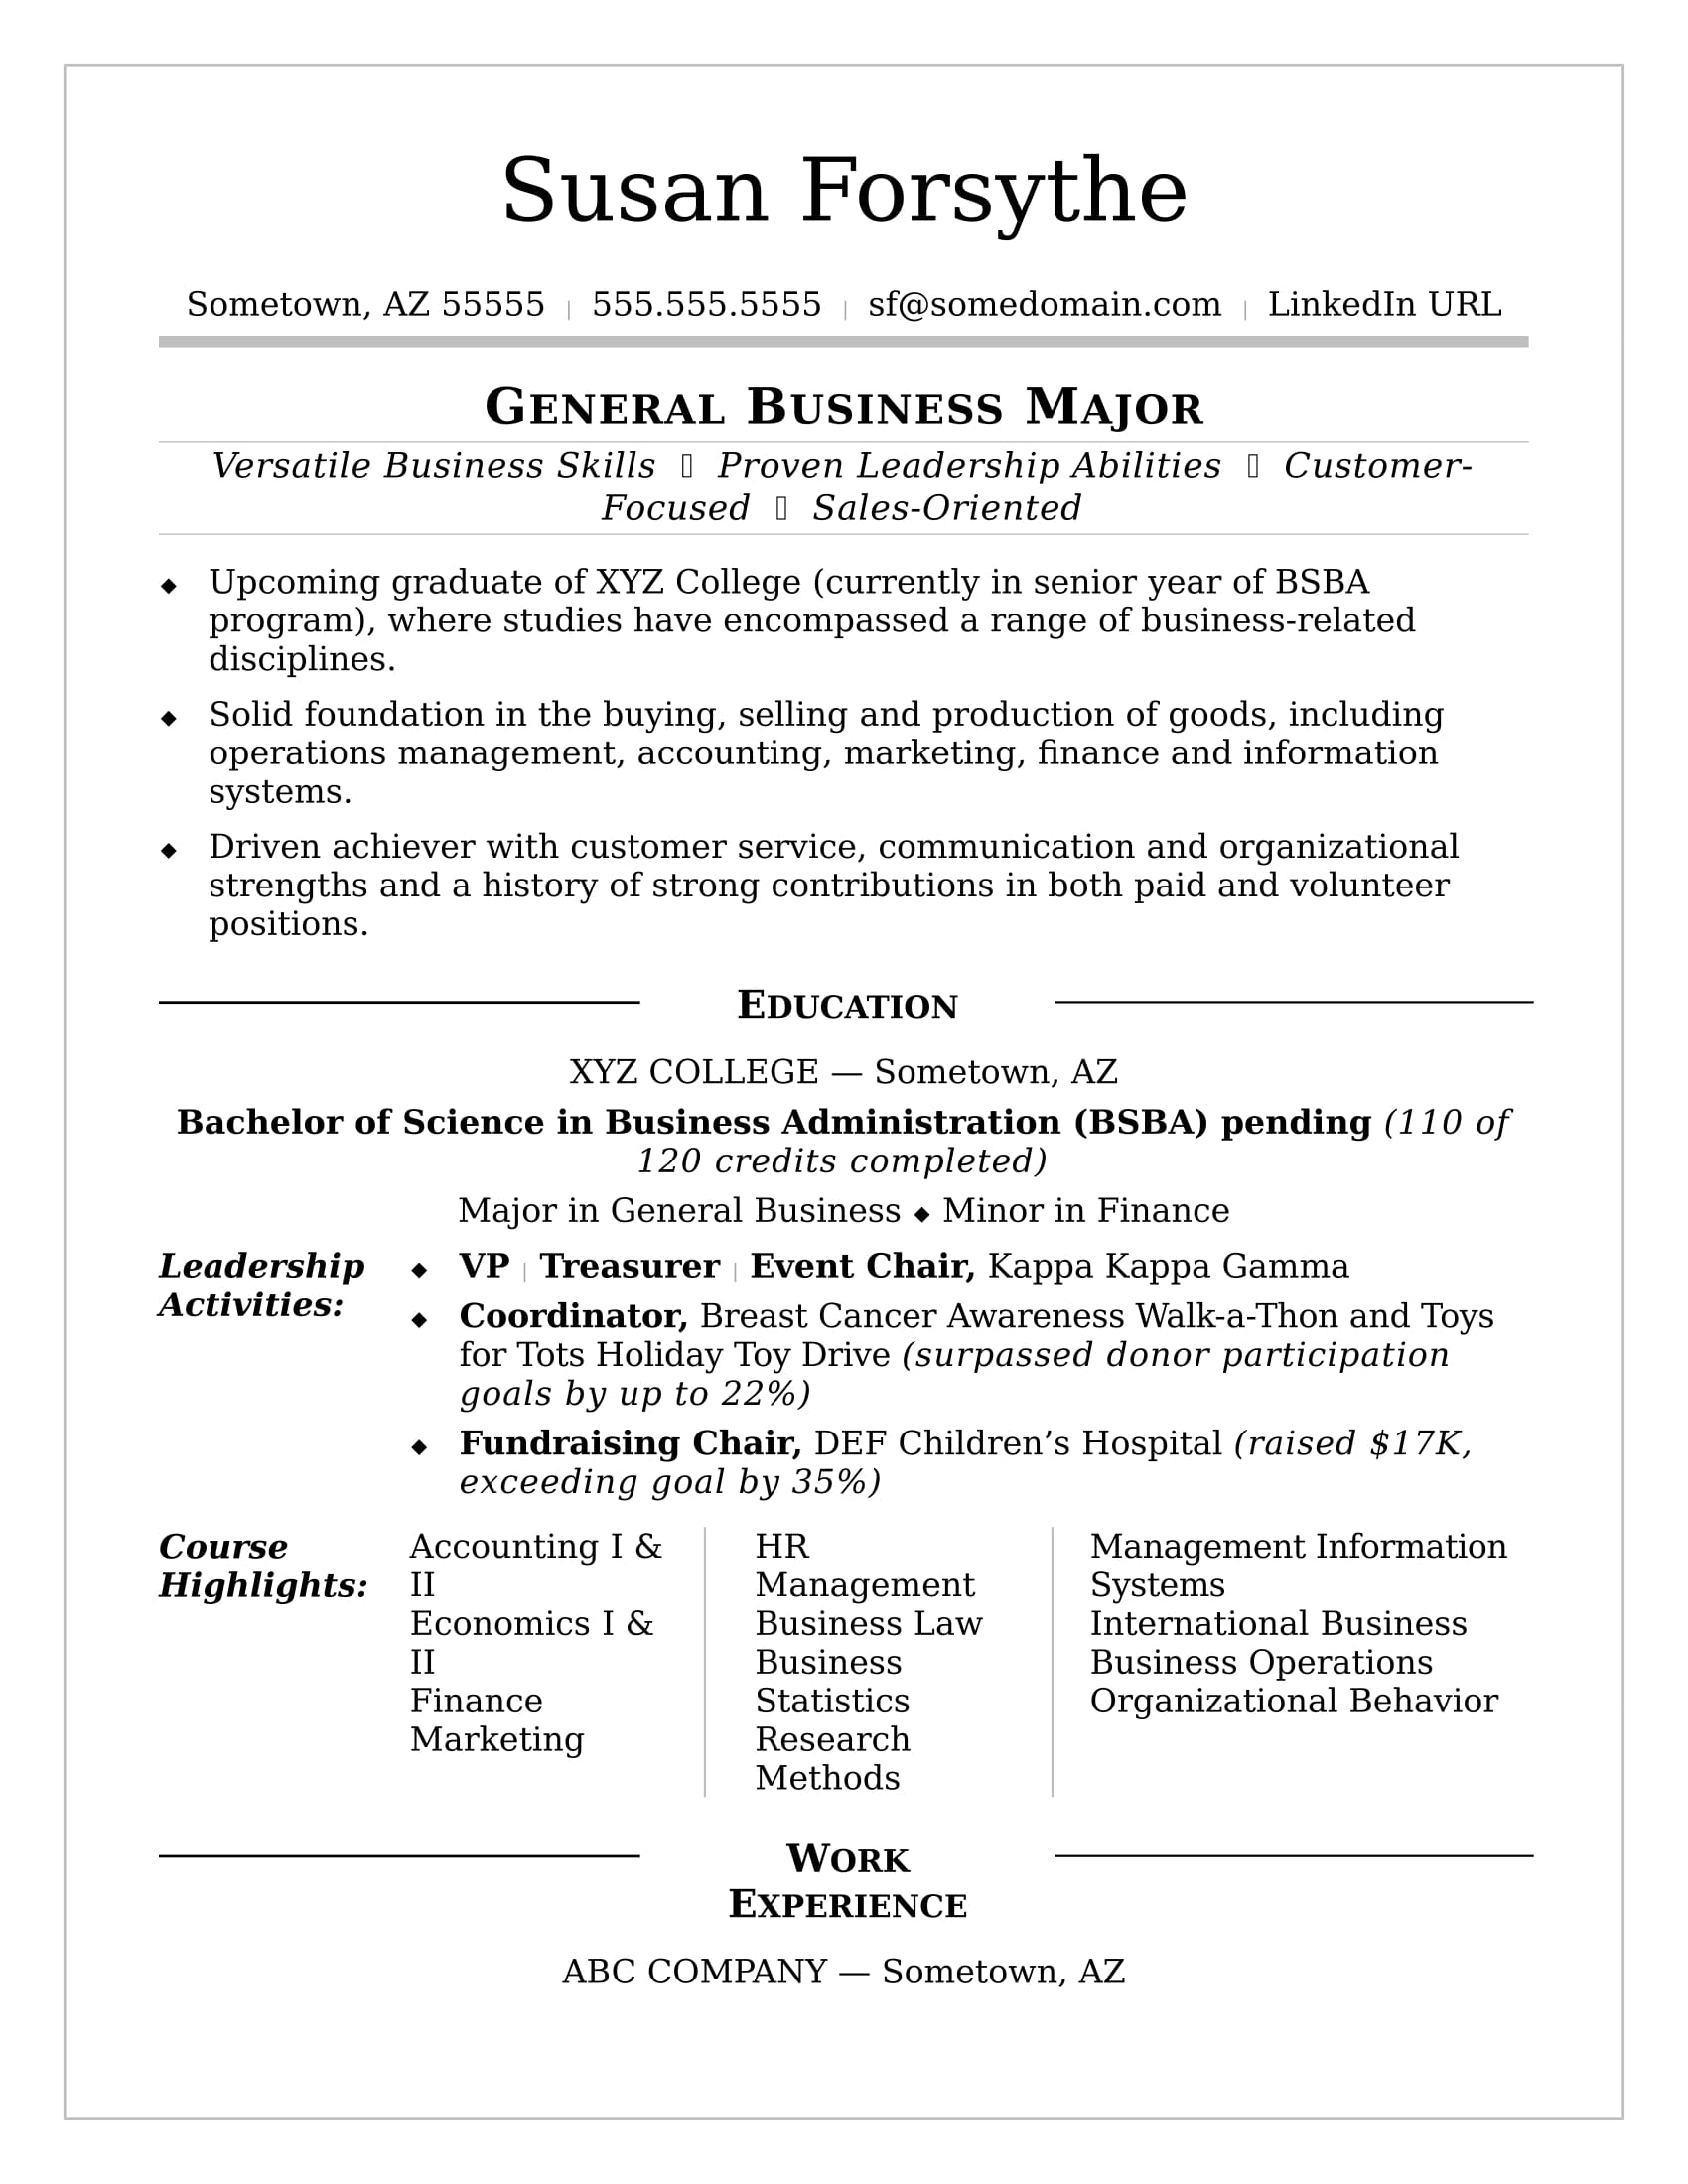 Resume Examples For Students In College Maggilocustdesignco - Resume examples